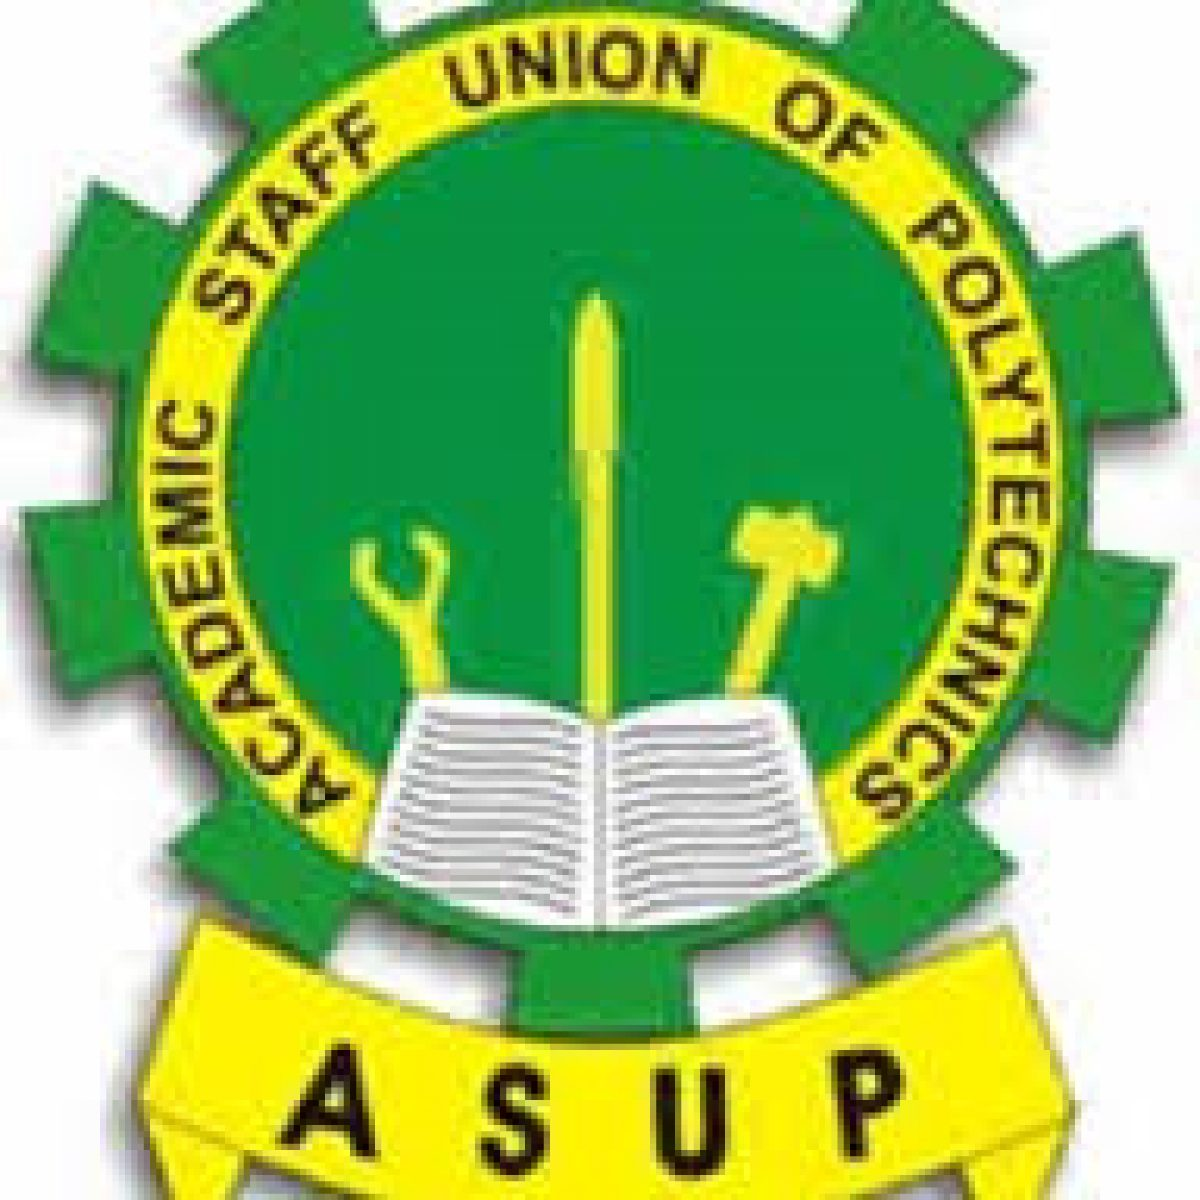 The Academic Staff Union Of Polytechnics (asup) Has Said It Will Shelve Its Proposed Strike To Support The Fight Against The Spread Of Covid 19 Pandemic Across The Country. The Asup President, Mr An